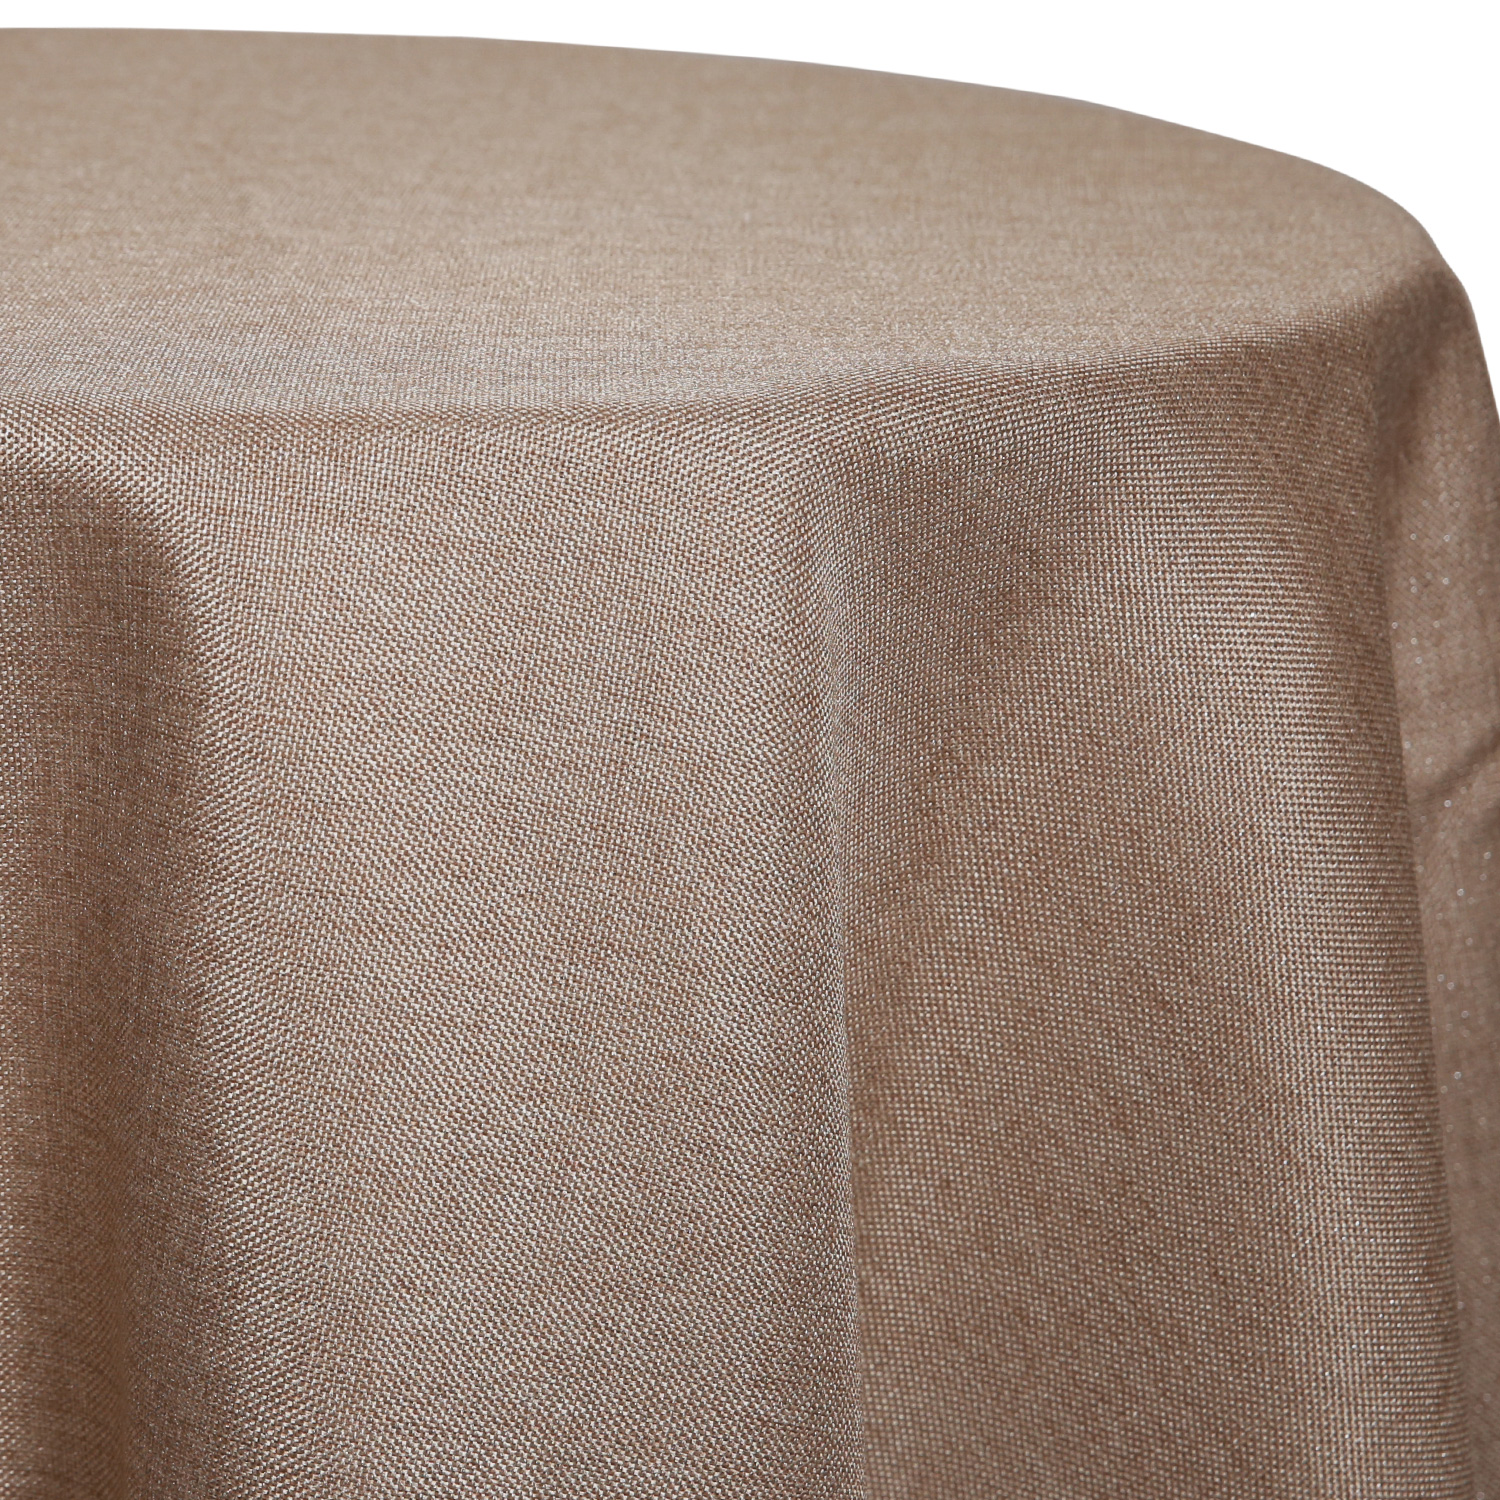 Latte - Designer Glitz Linen Broad Tablecloth by Eastern Mills - Many Size  Options